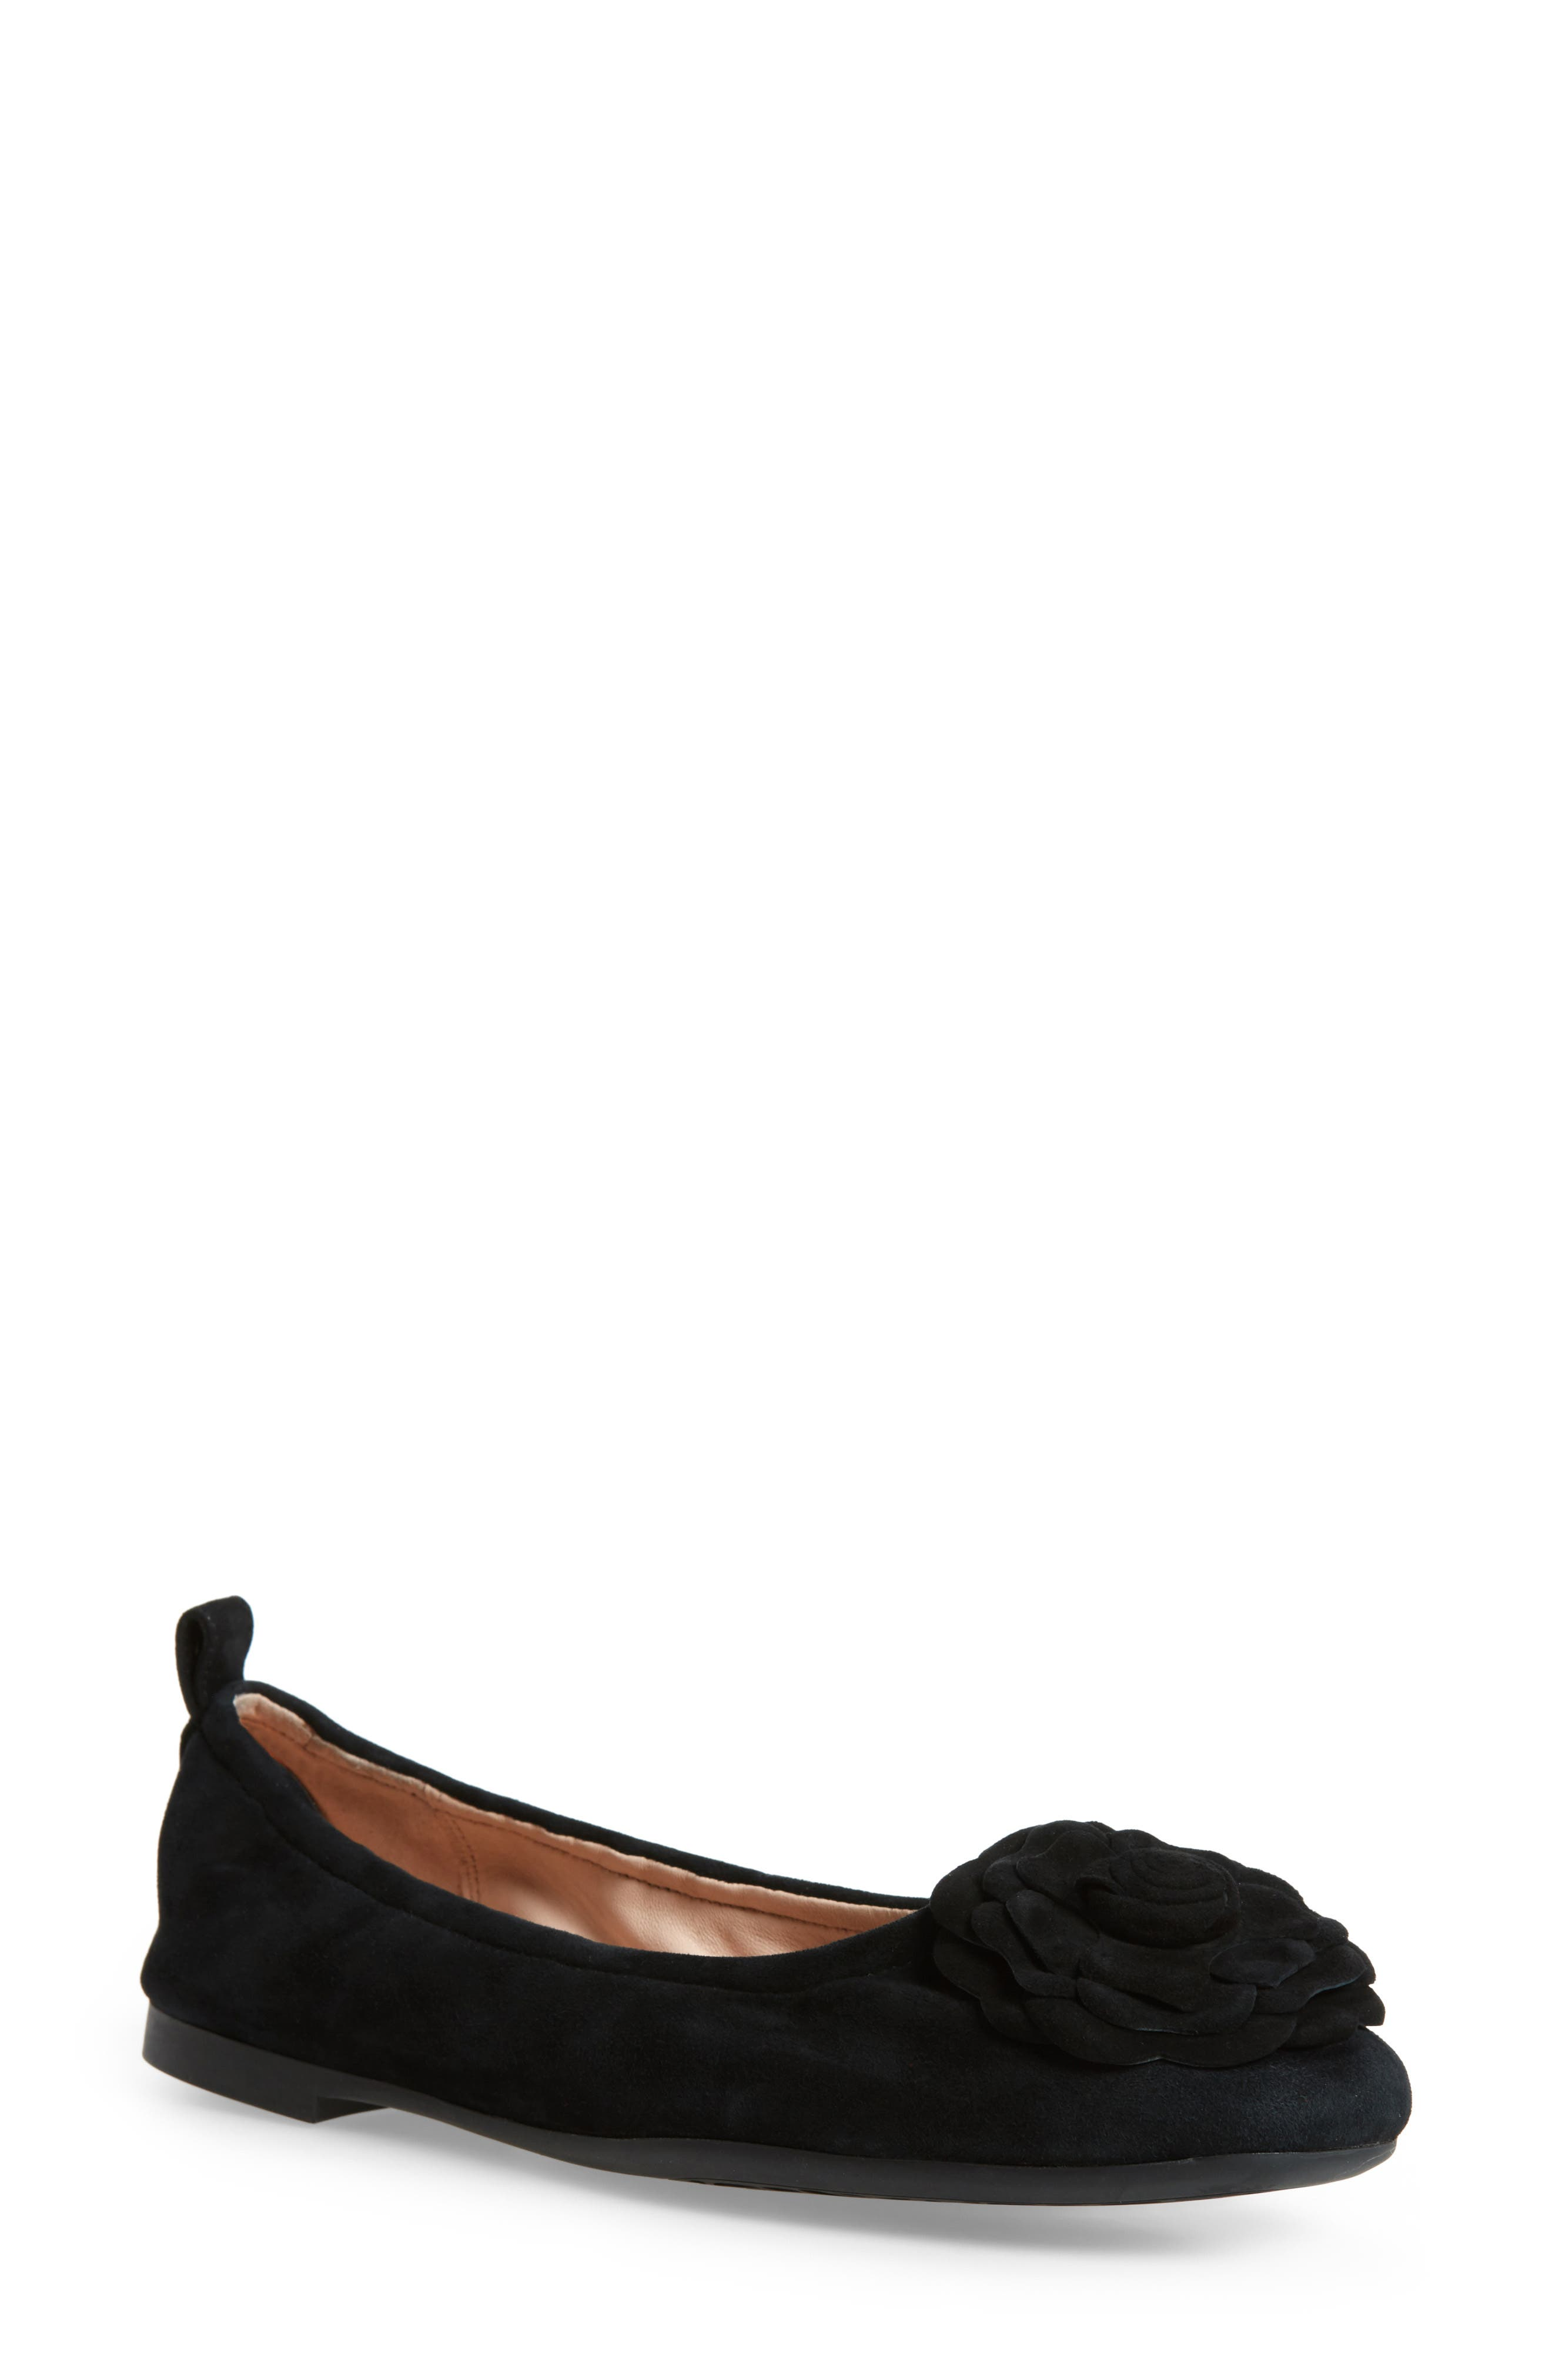 TARYN ROSE Rosalyn Ballet Flat, Main, color, BLACK SUEDE